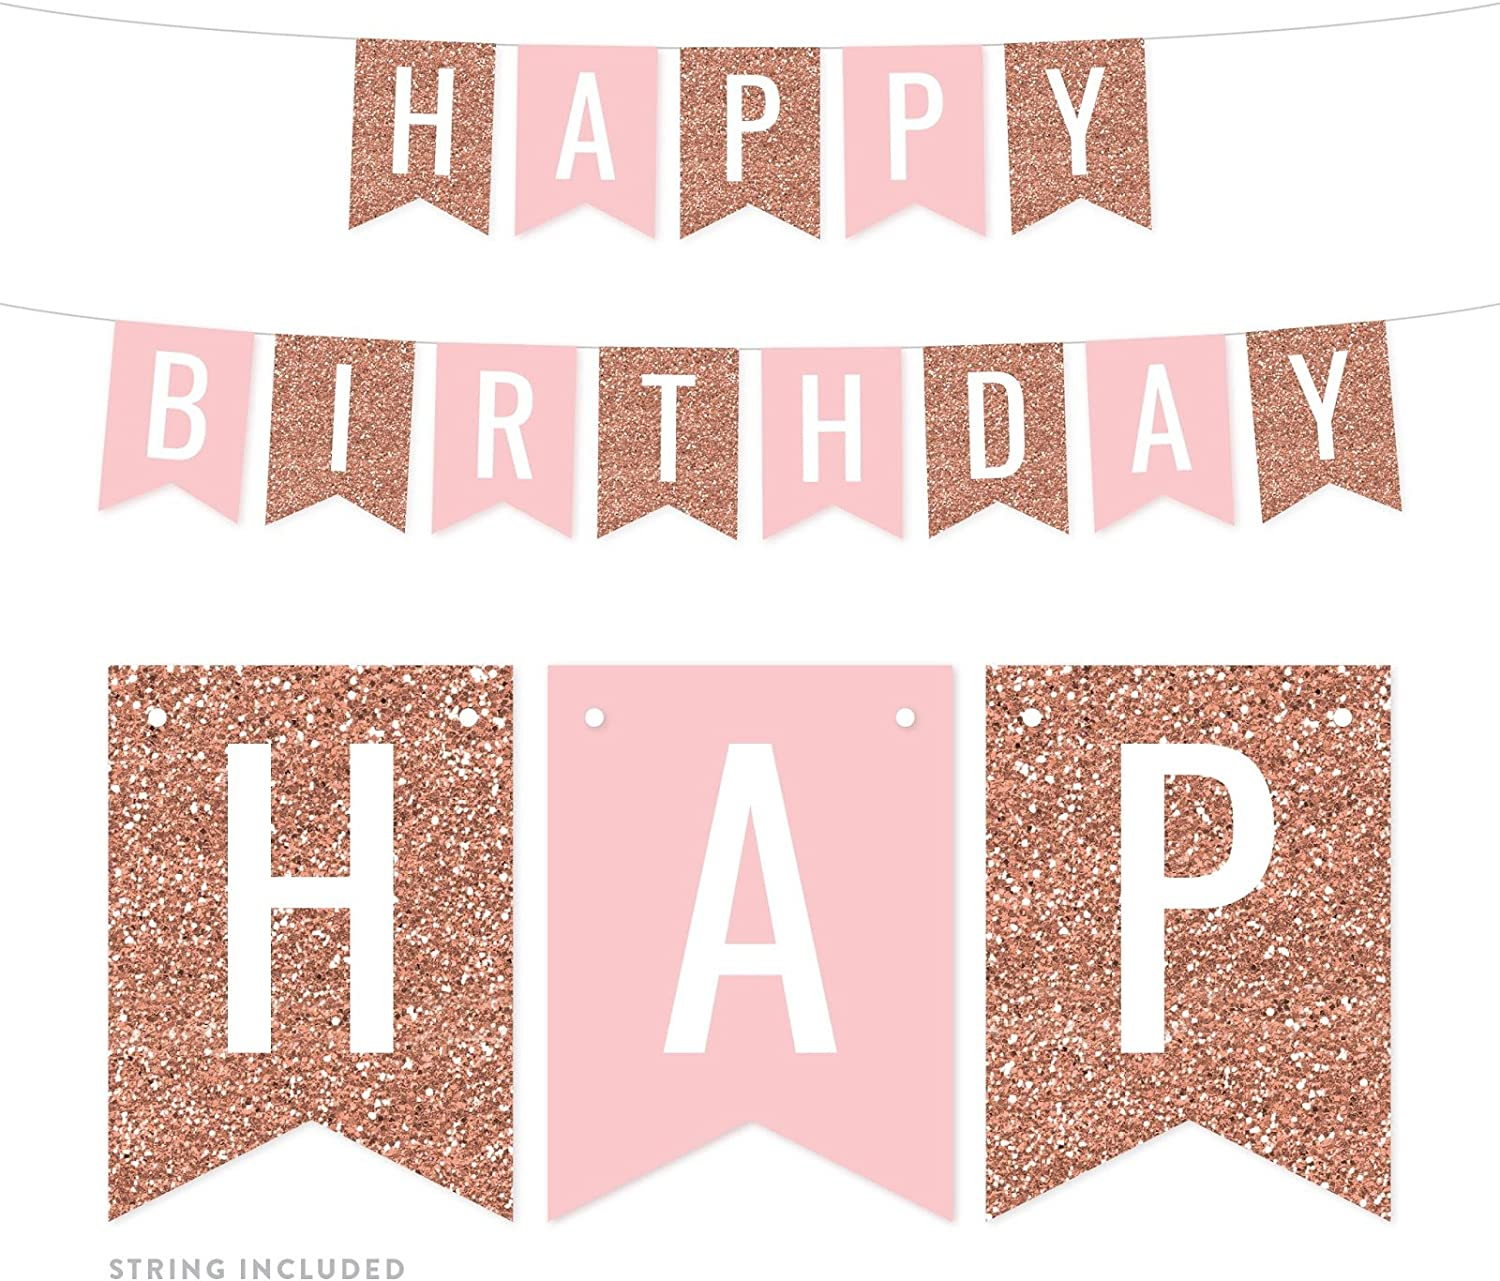 Andaz Press Hanging Pennant Banner Party Decorations, Rose Gold Glitter, Blush Pink, Happy Birthday, 1-Pack, Approx. 5-Feet, Girl's 1st Birthday Sweet 16 Mis Quince Themed Decor